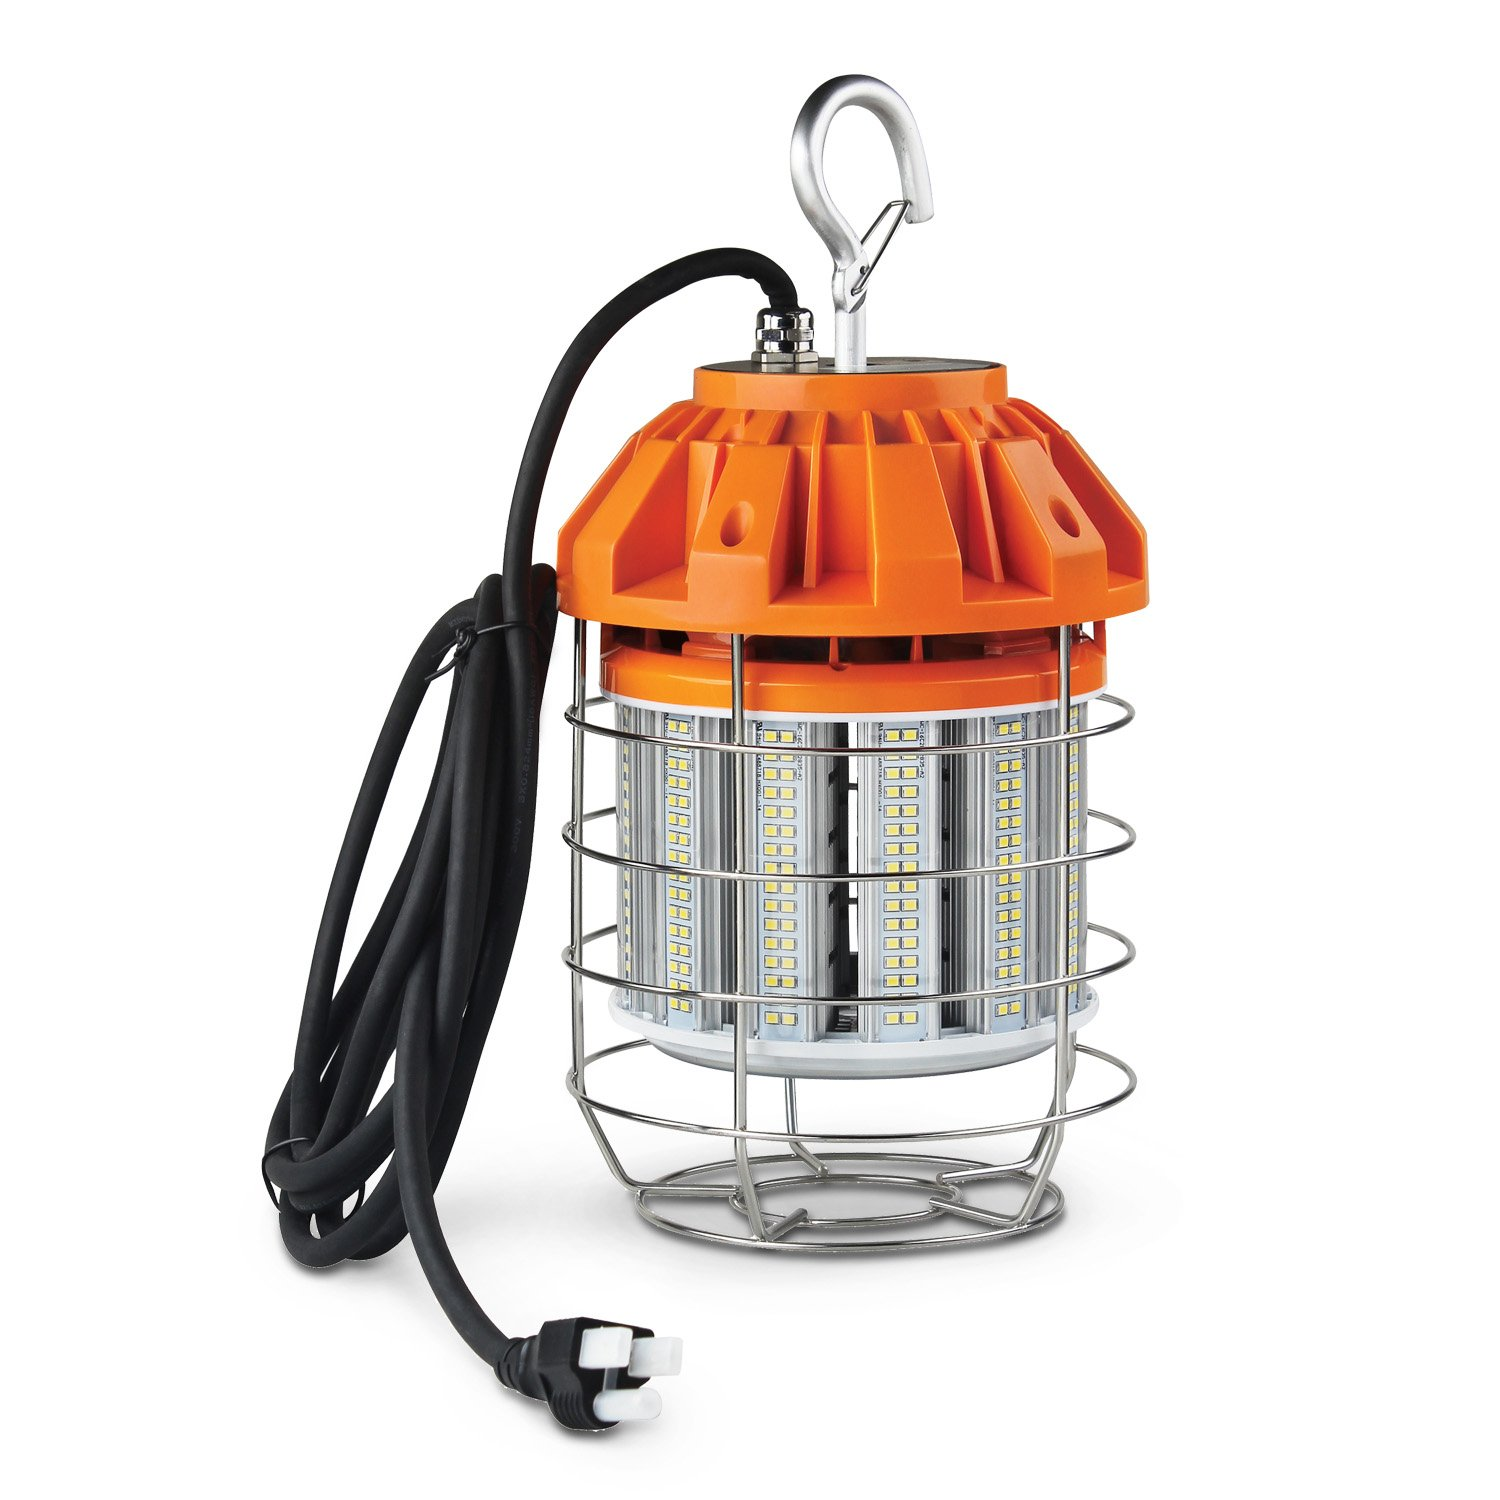 ASD LED Temporary Work Light Fixture 60W 5000K (Daylight) 6591lm Commercial Grade UL Listed, DLC Certified